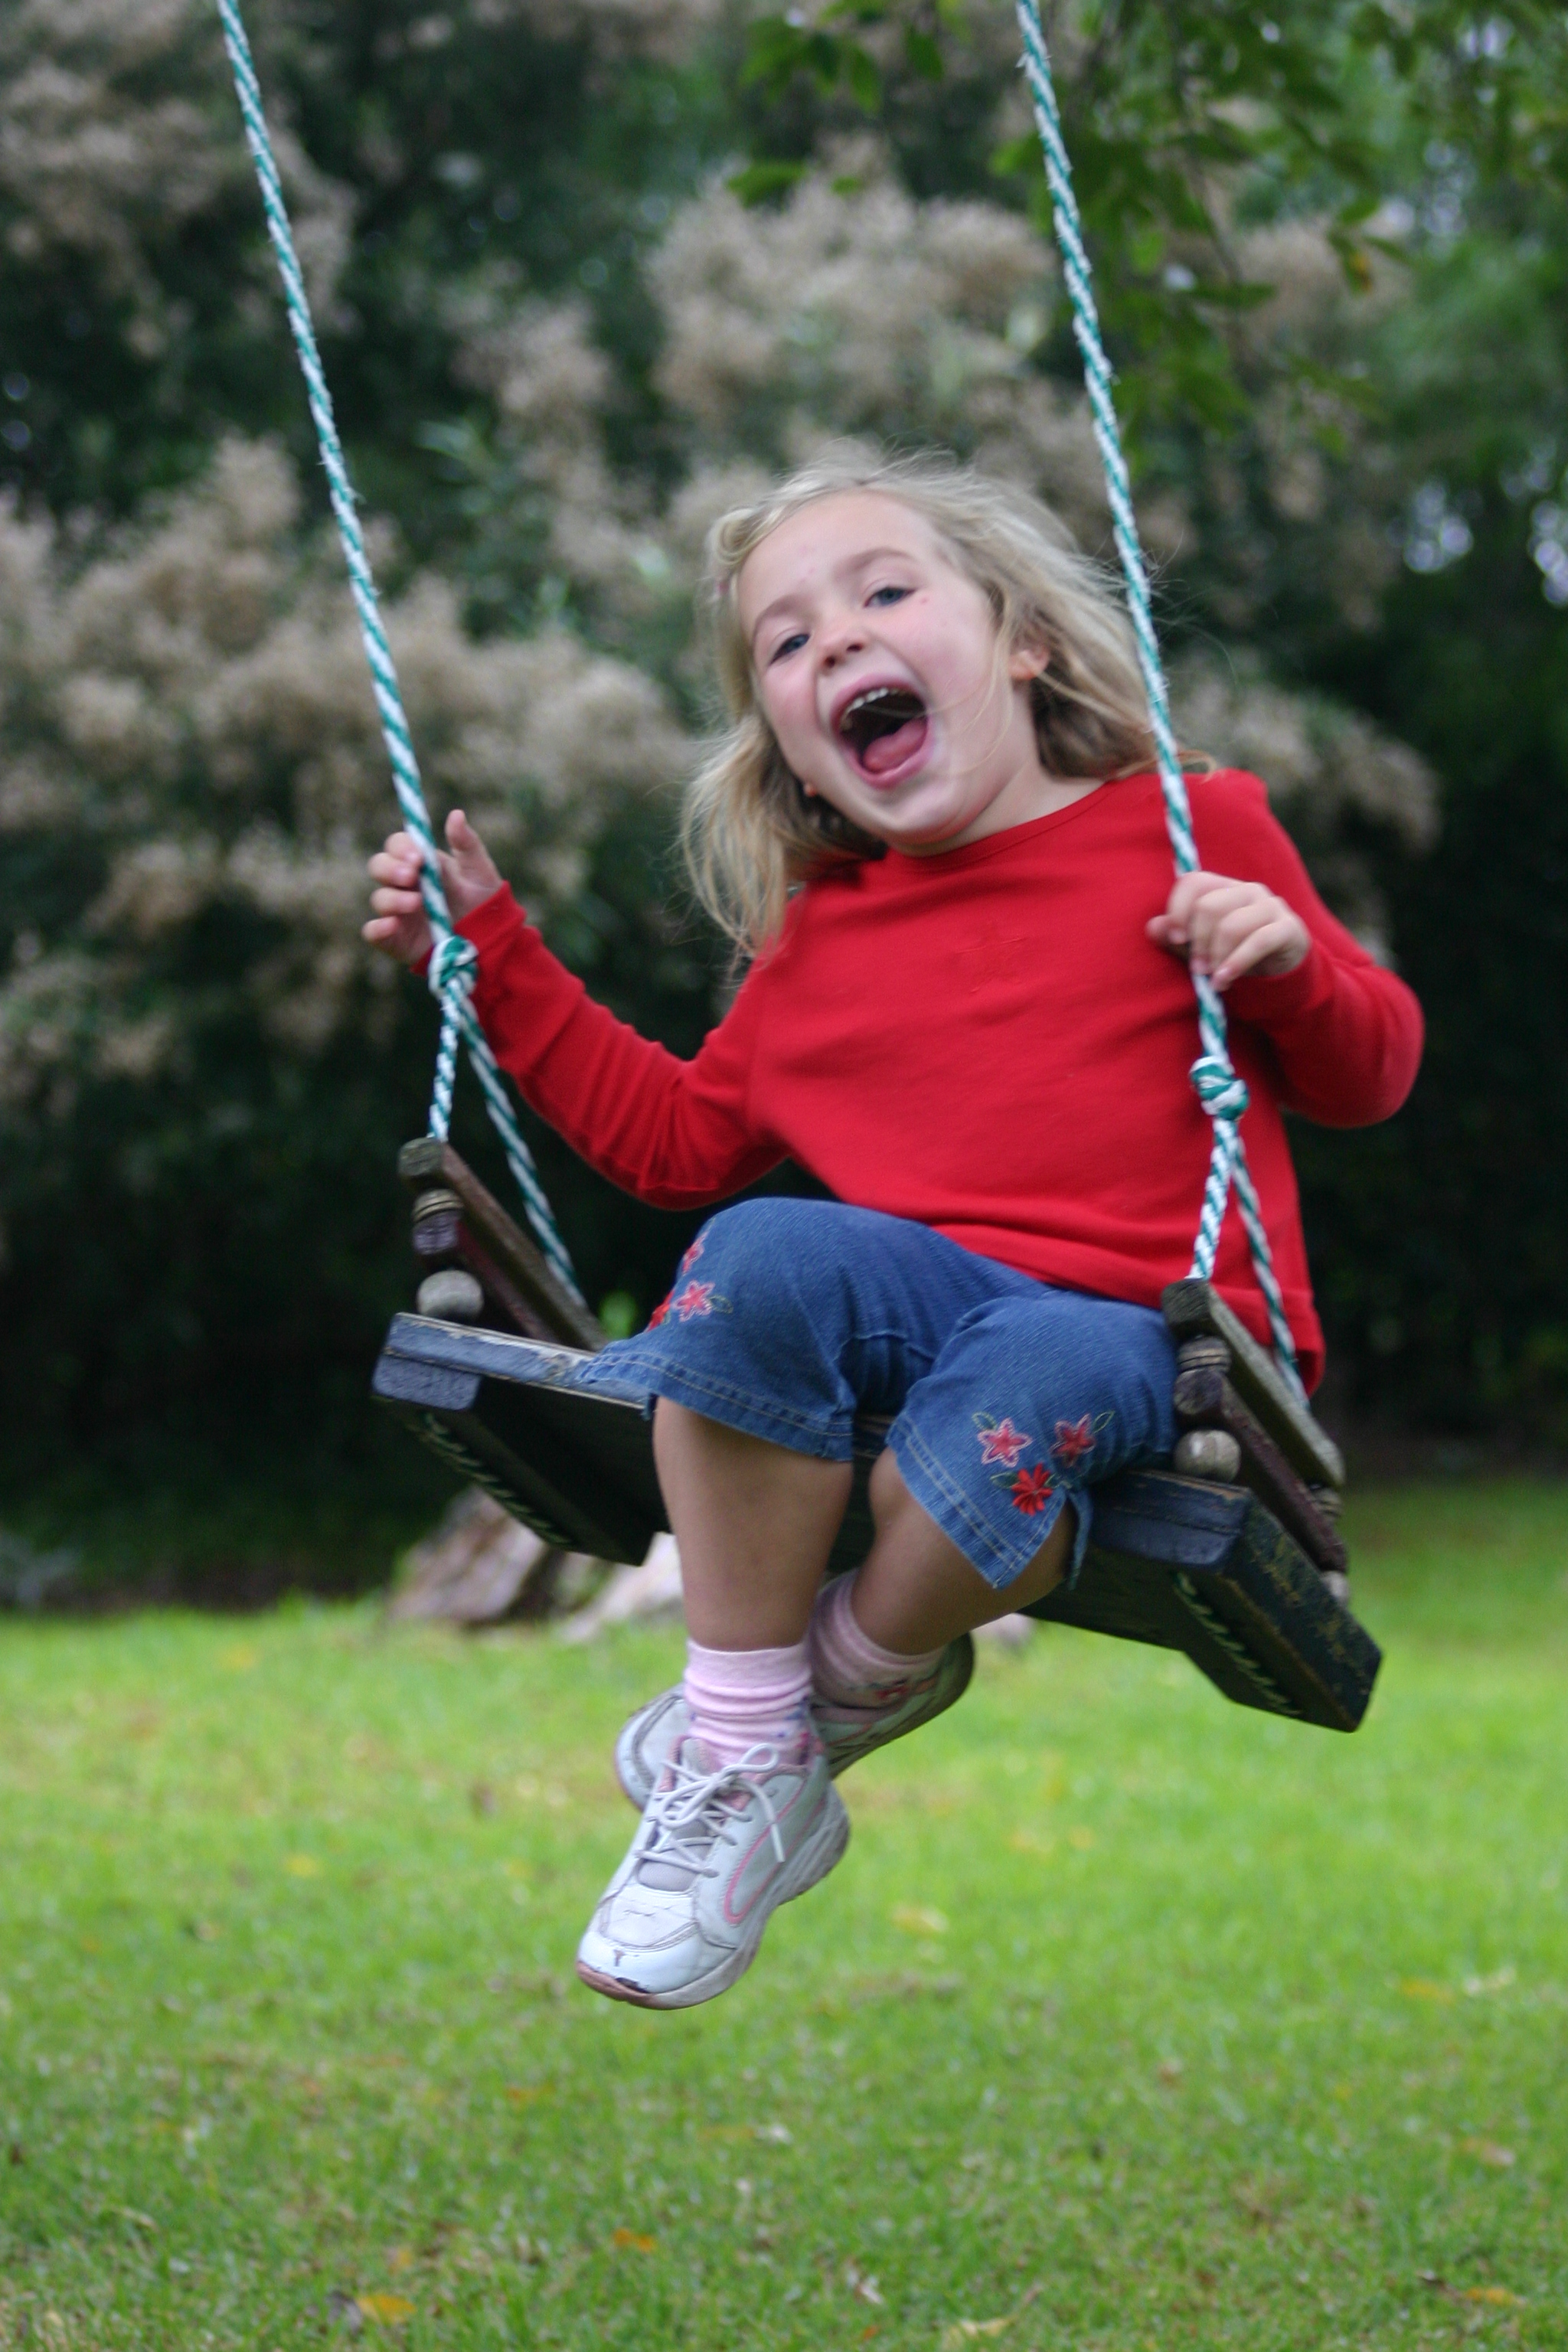 Michaela swinging